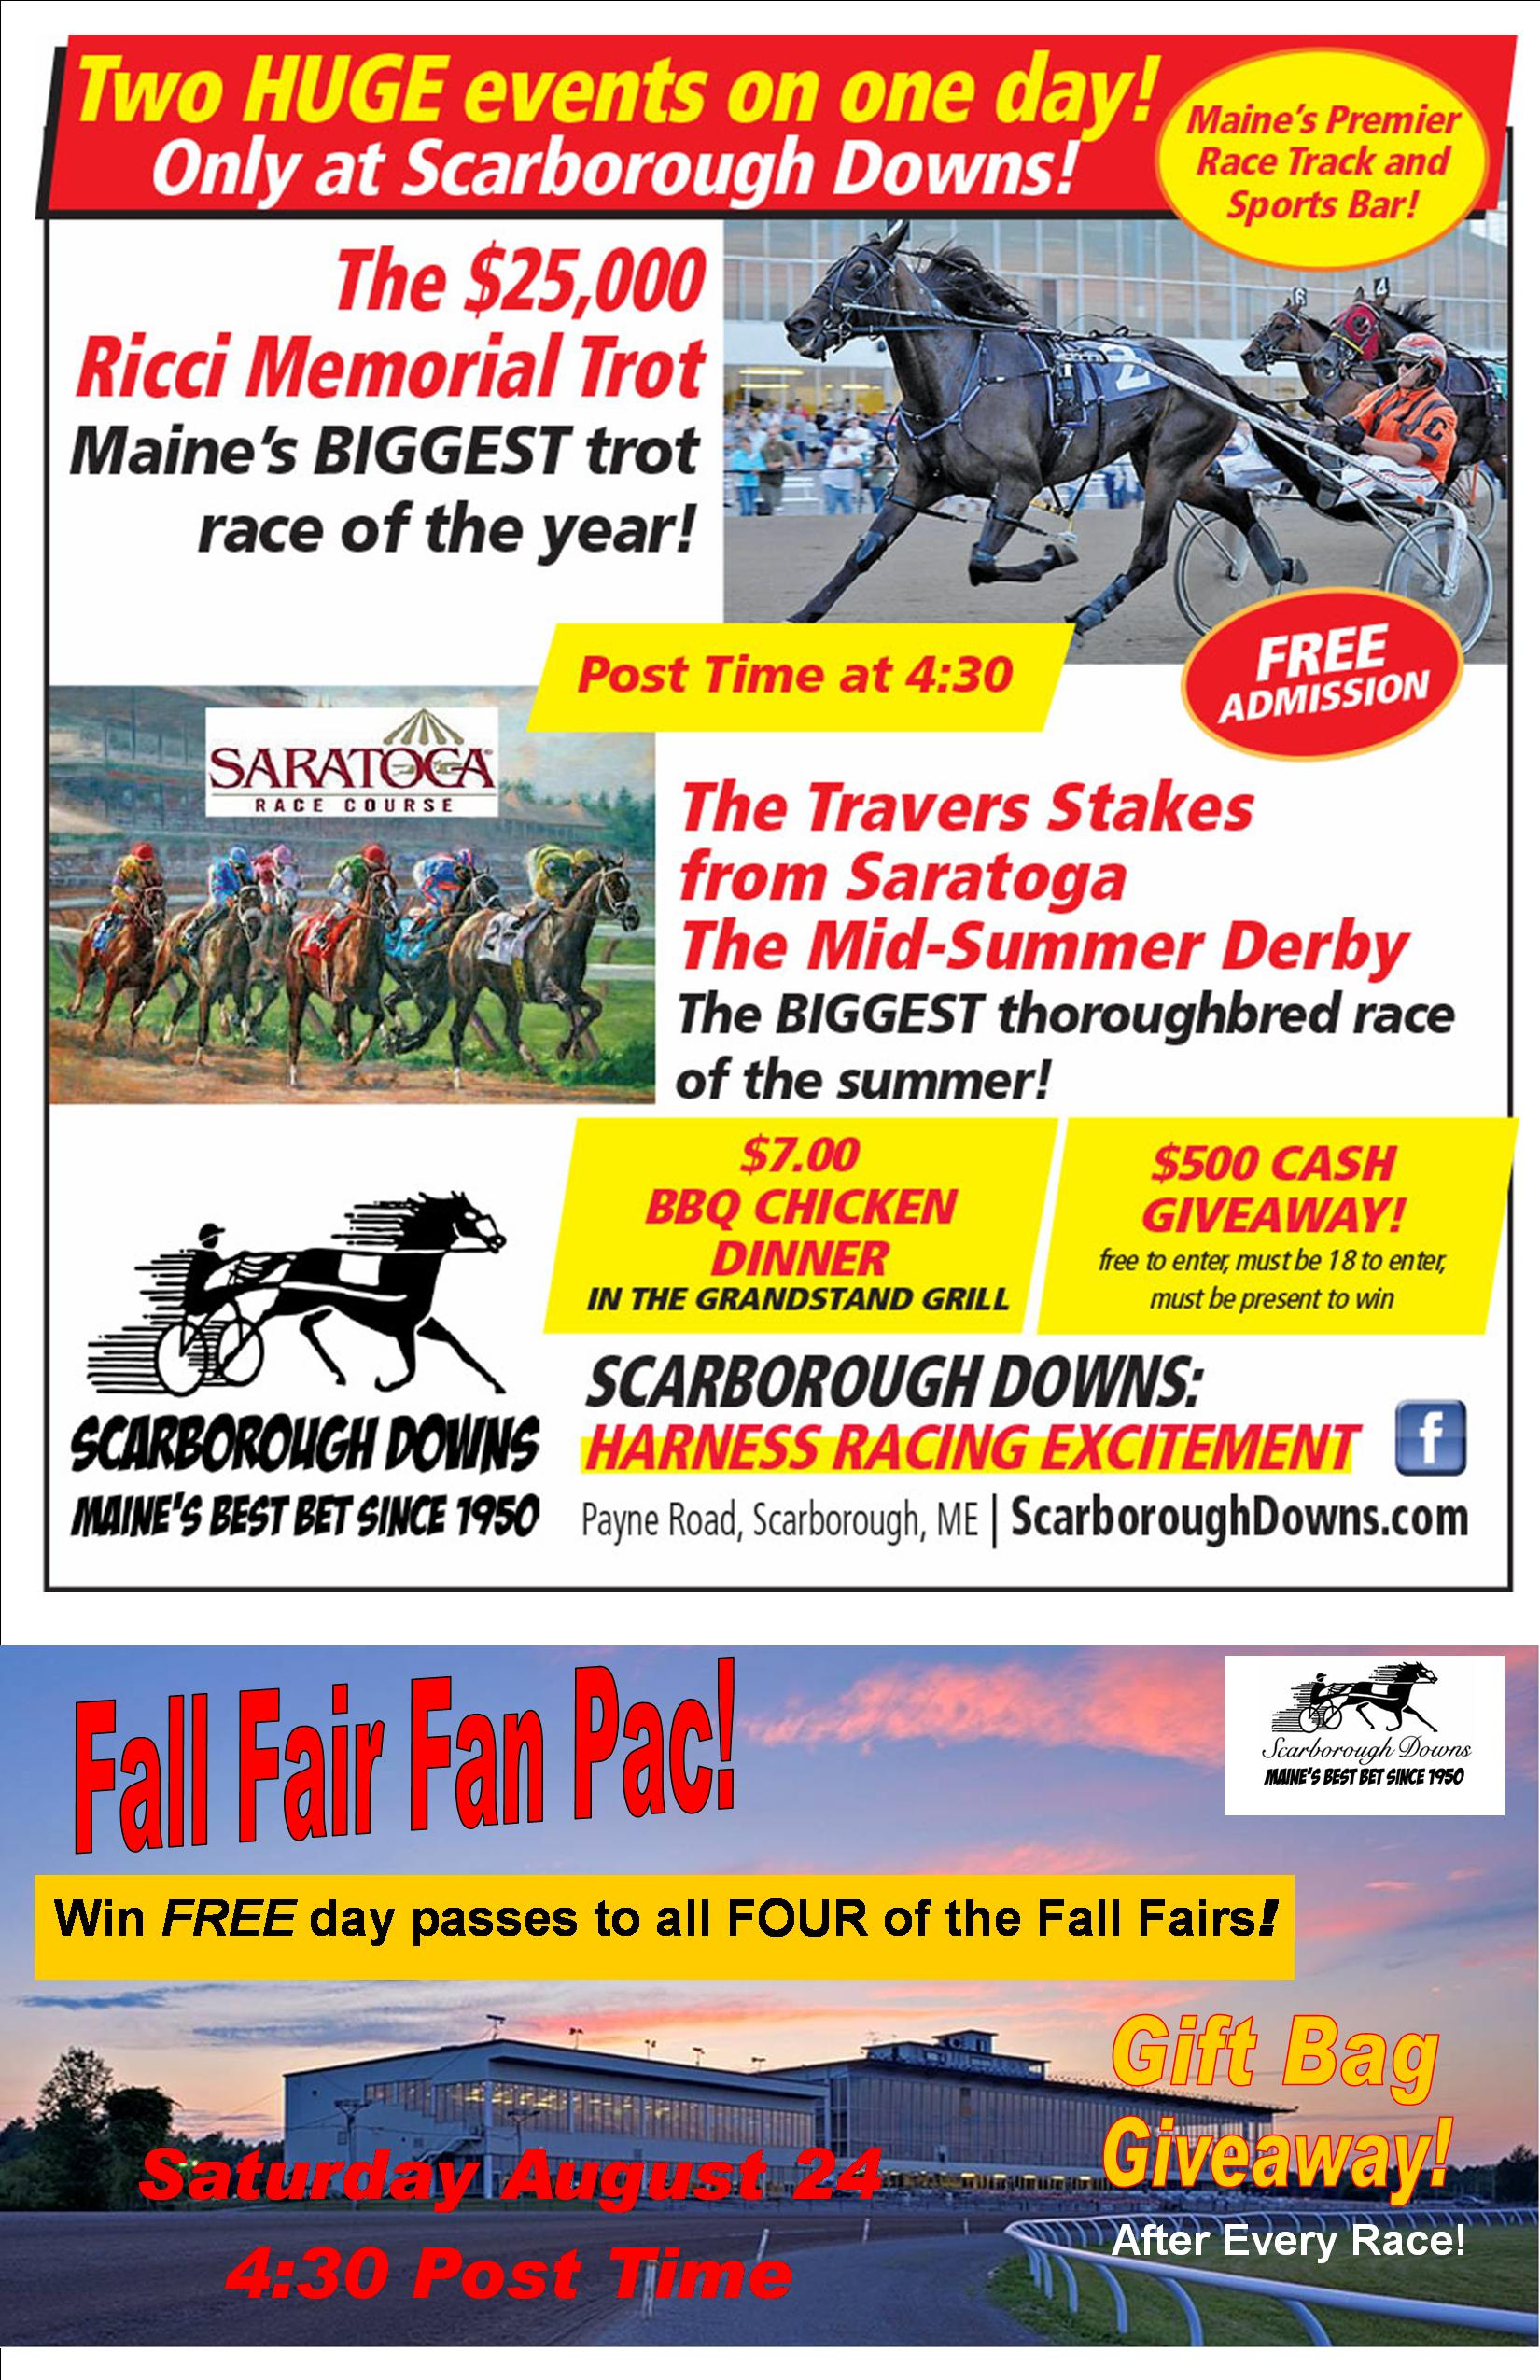 Scarborough Downs - Special Events